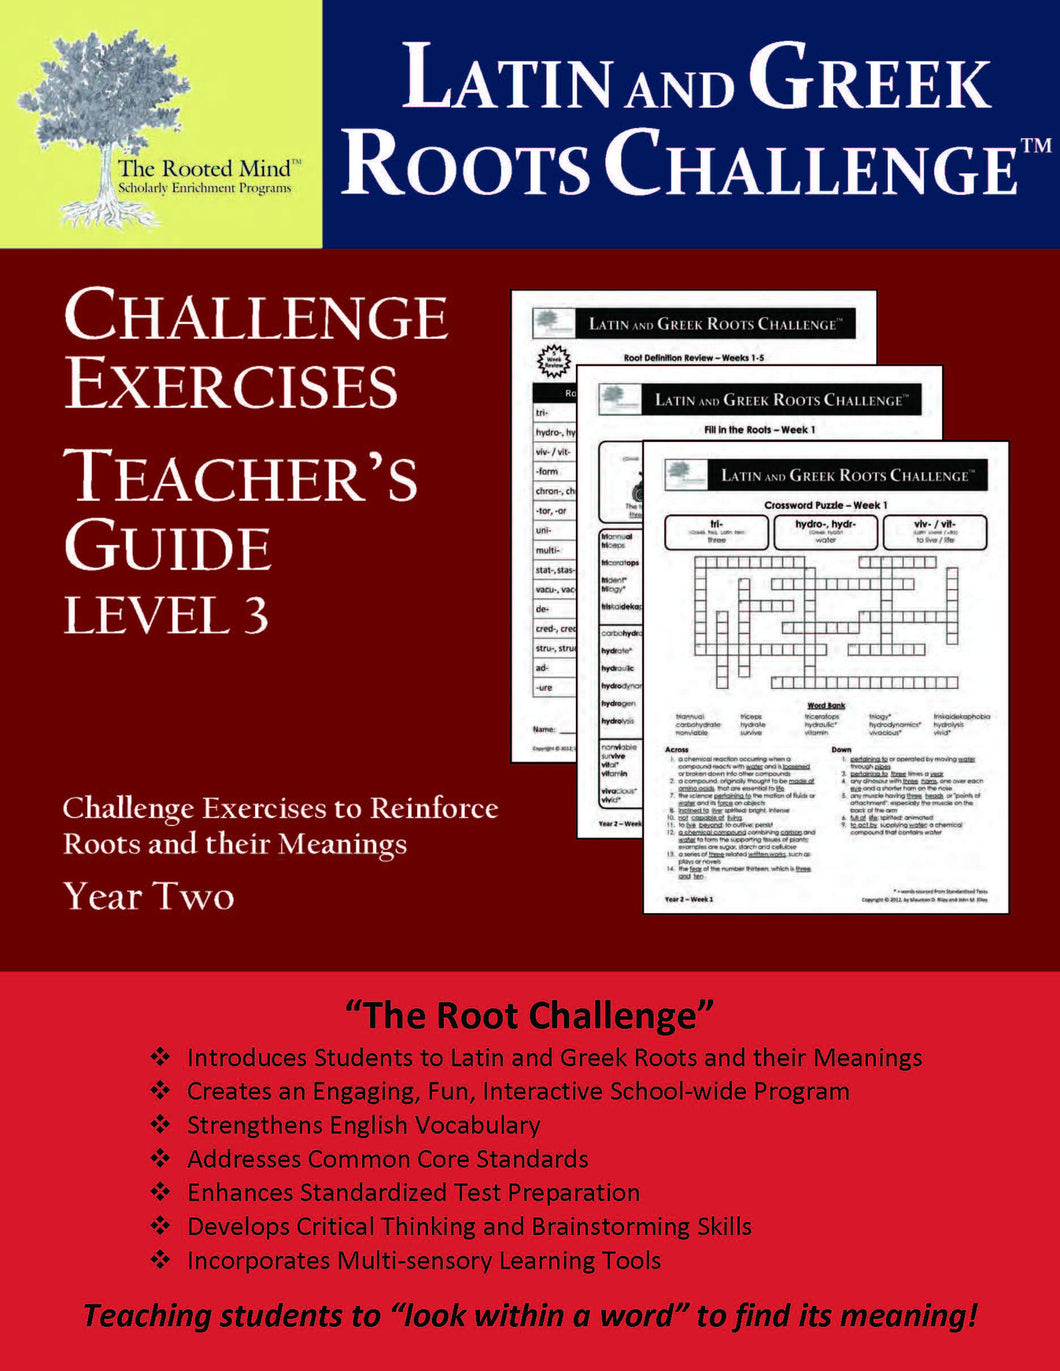 Latin and Greek Roots Challenge - Year 2 - Level 3 Teacher's Guide